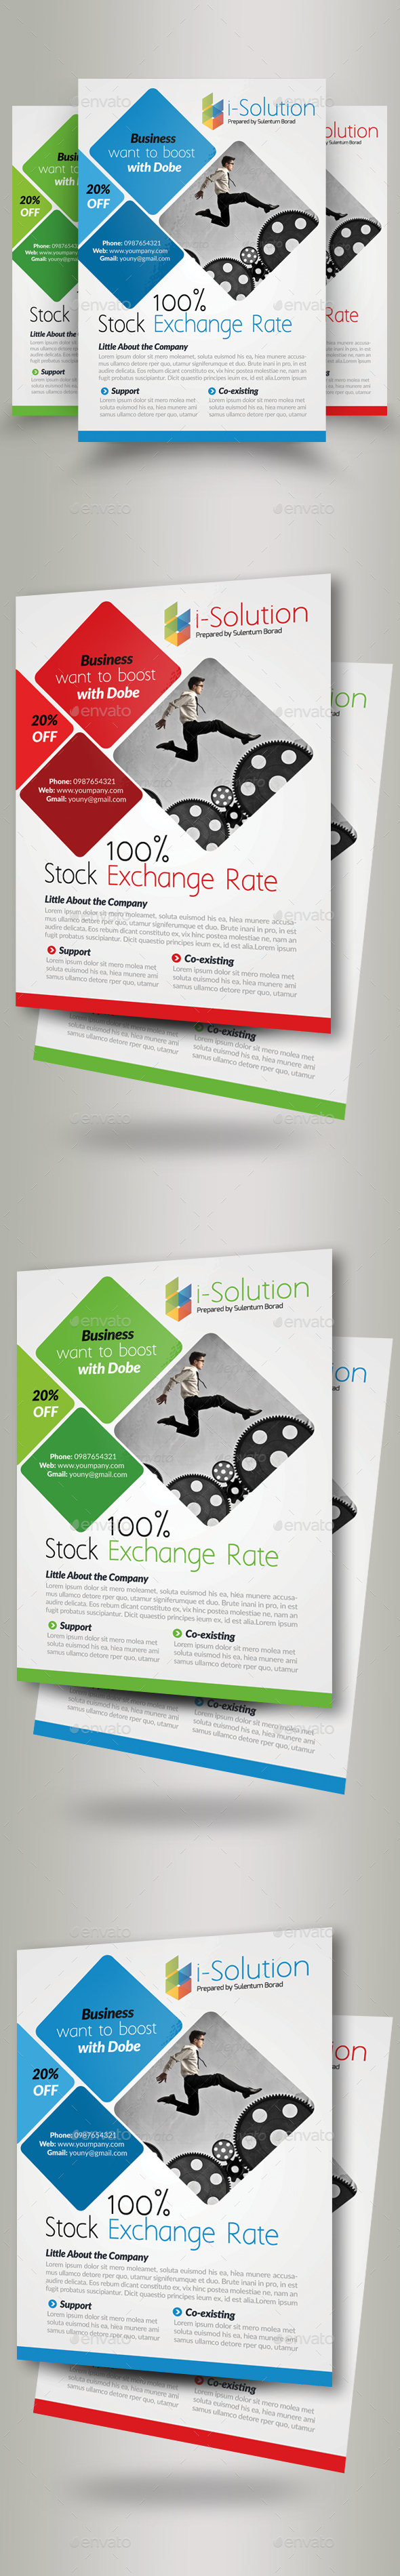 Business Strategy Flyers - Corporate Flyers